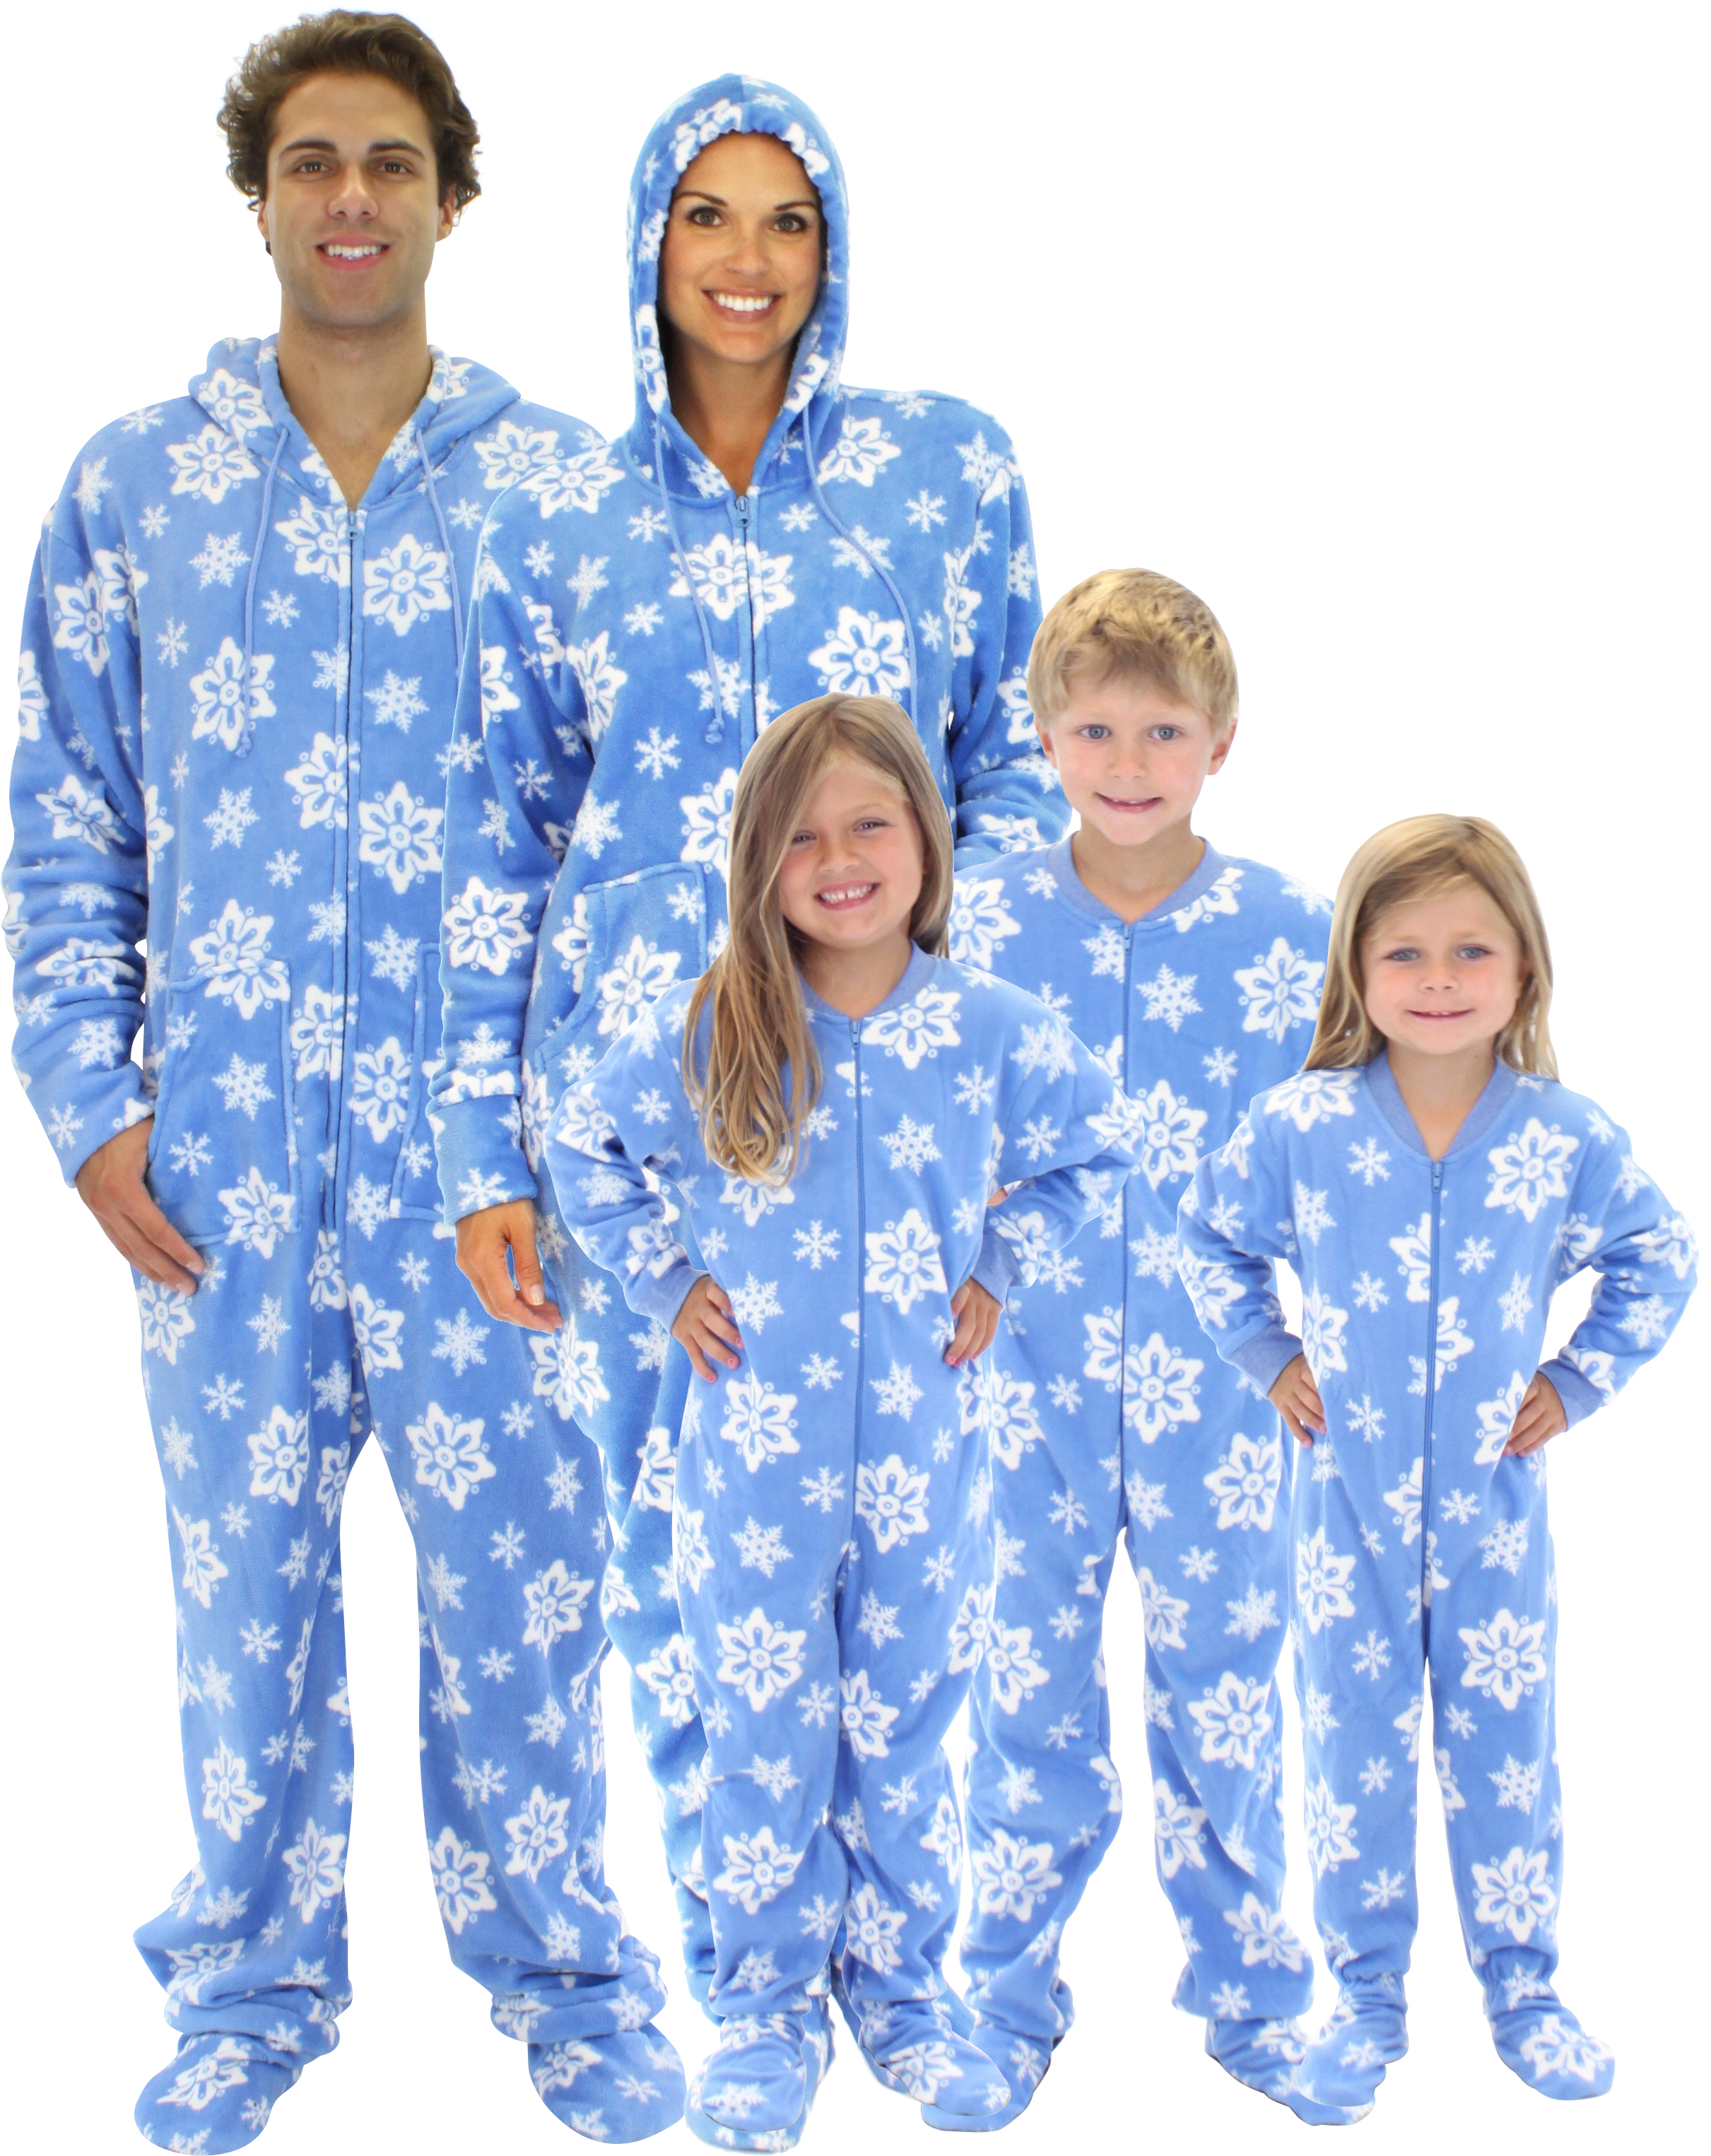 The blanket sleeper or footie pajama (also known by many other synonyms and trade names) is a type of especially warm sleeping garment worn primarily during the winter in the United States and Canada.